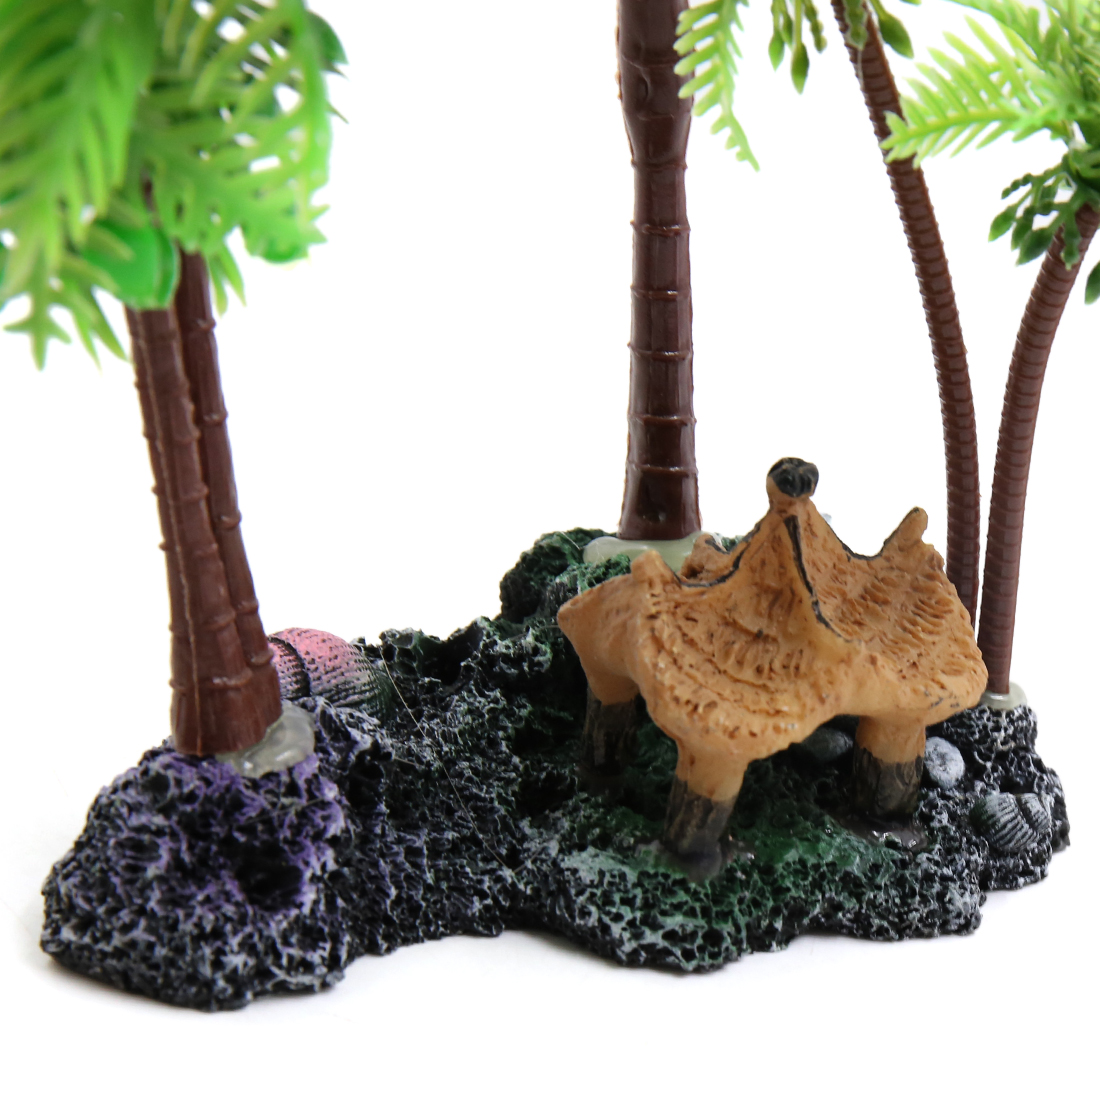 Green Plastic Coconut Tree Aquarium Aquascape Plant Decoration w/ Resin Base - image 2 of 4